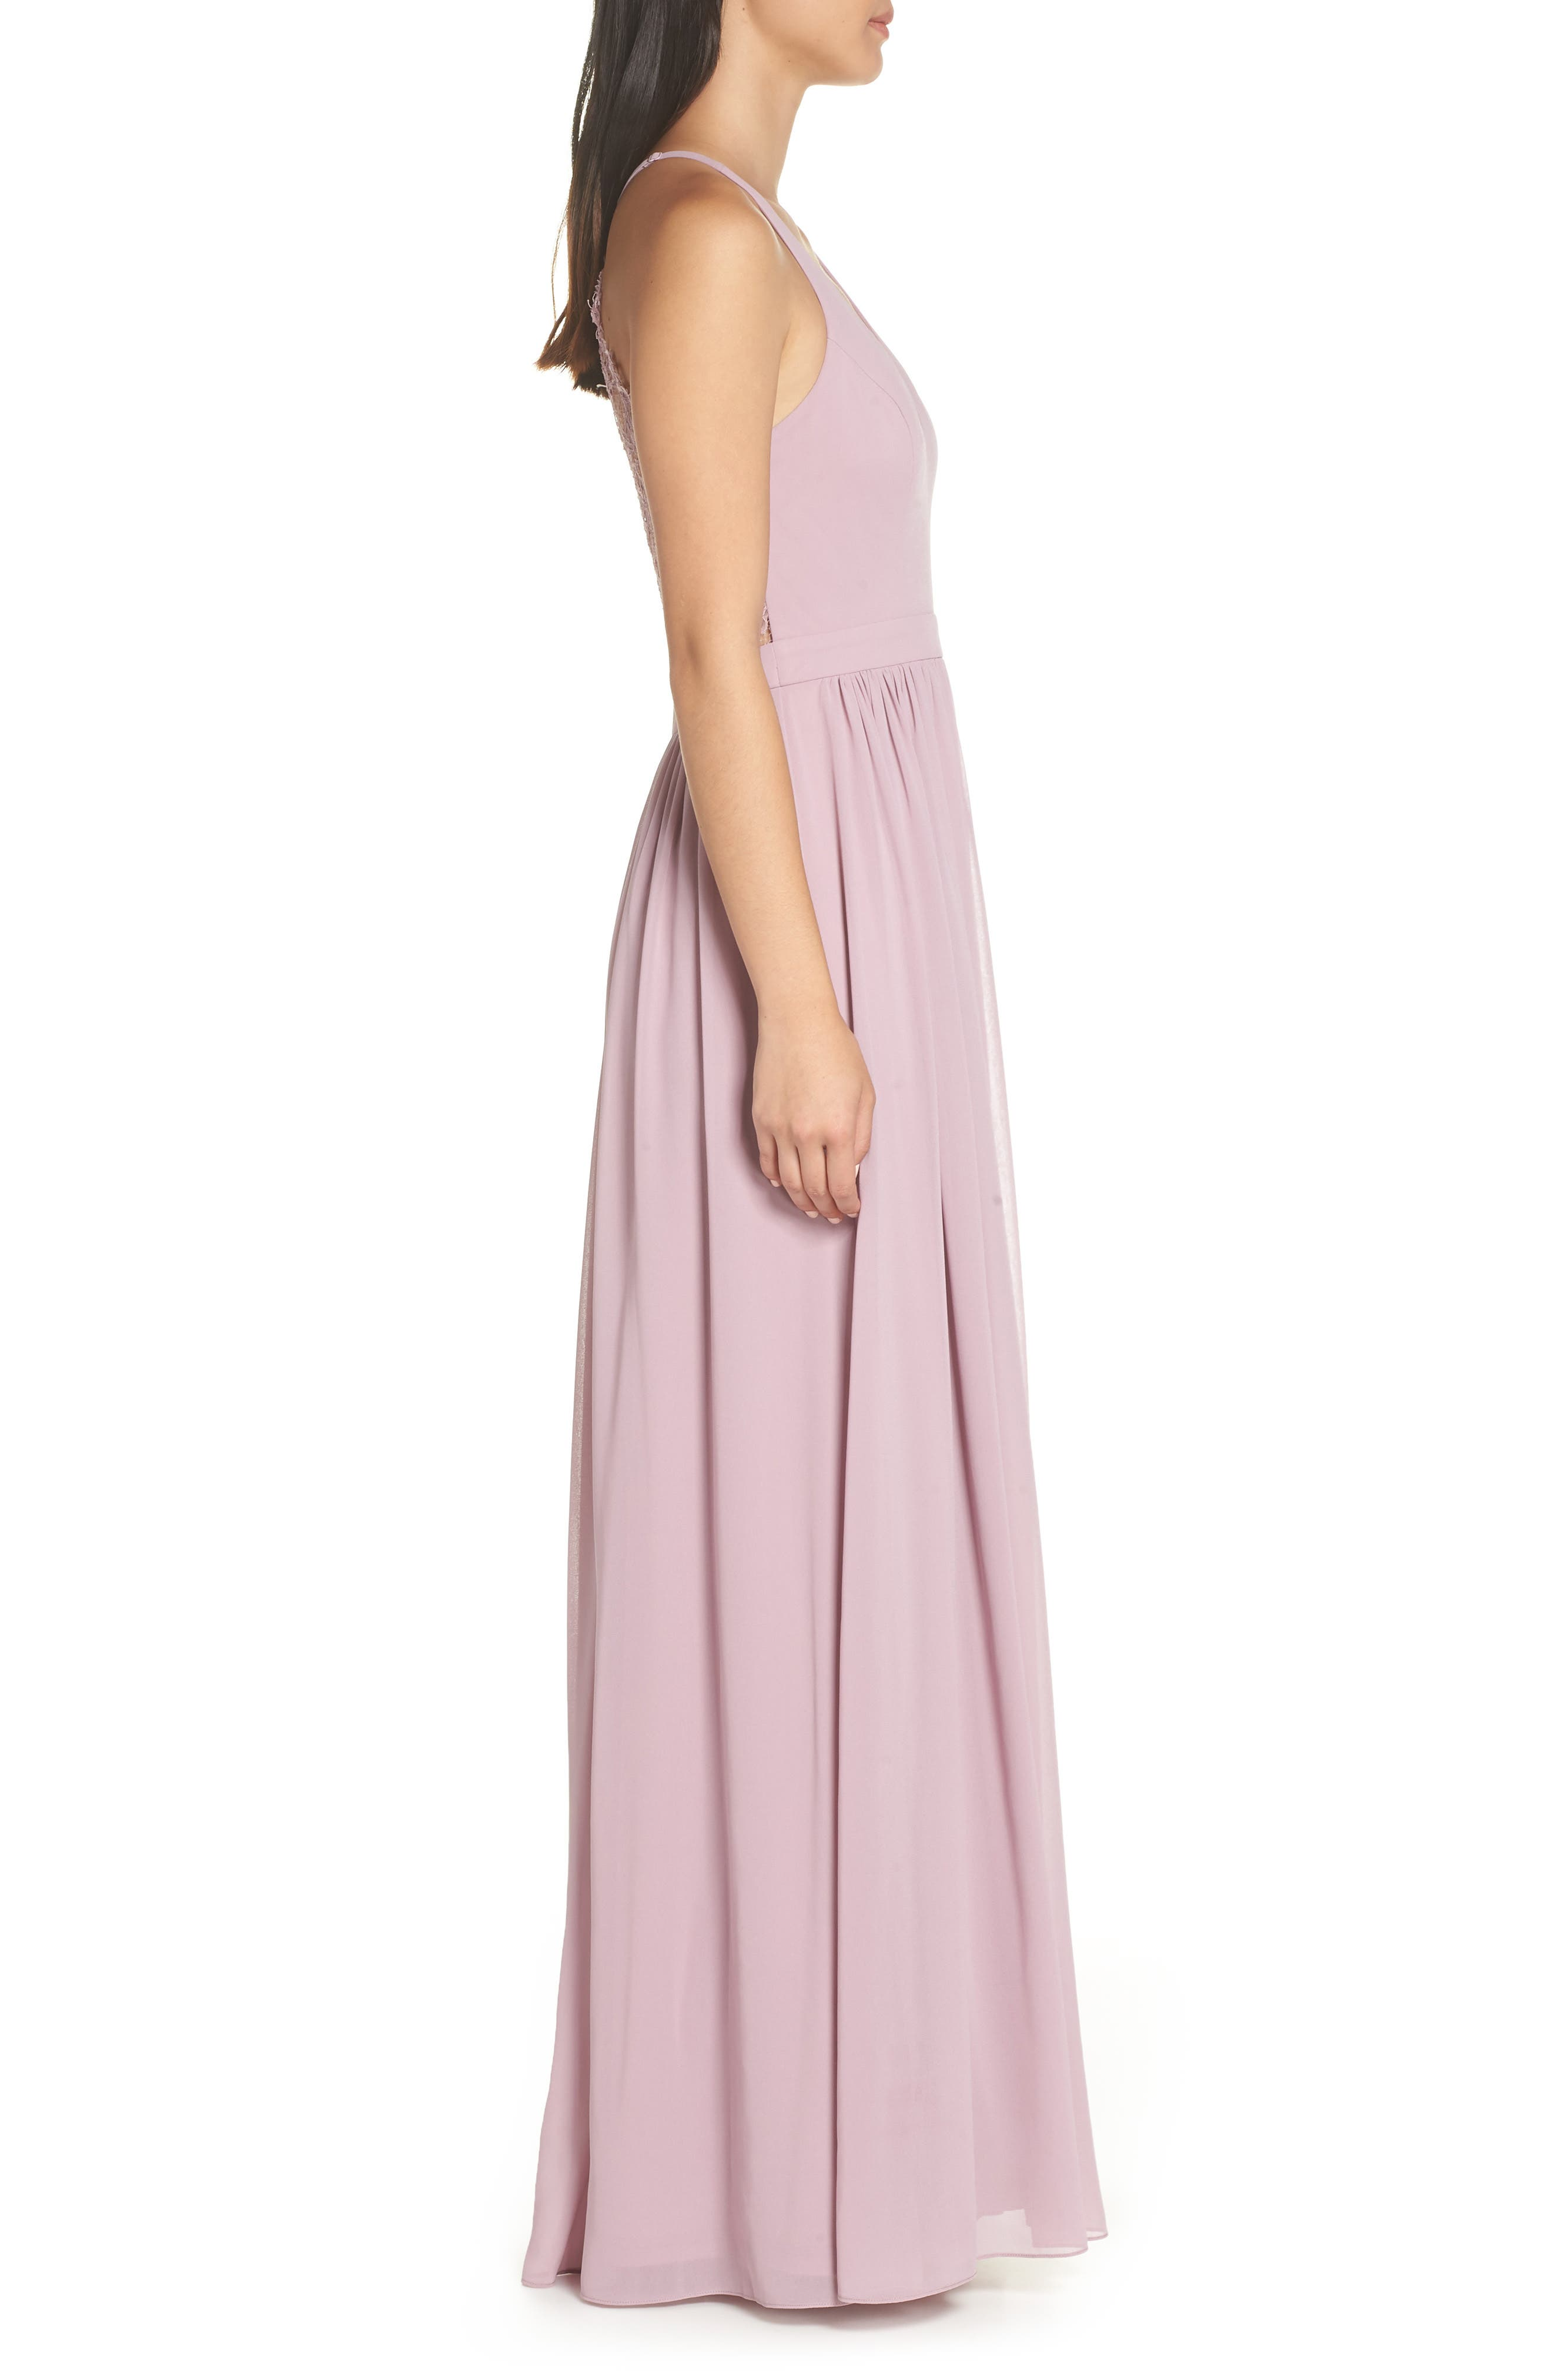 LULUS, Everlasting Beauty Lace Back Chiffon Gown, Alternate thumbnail 4, color, LAVENDER